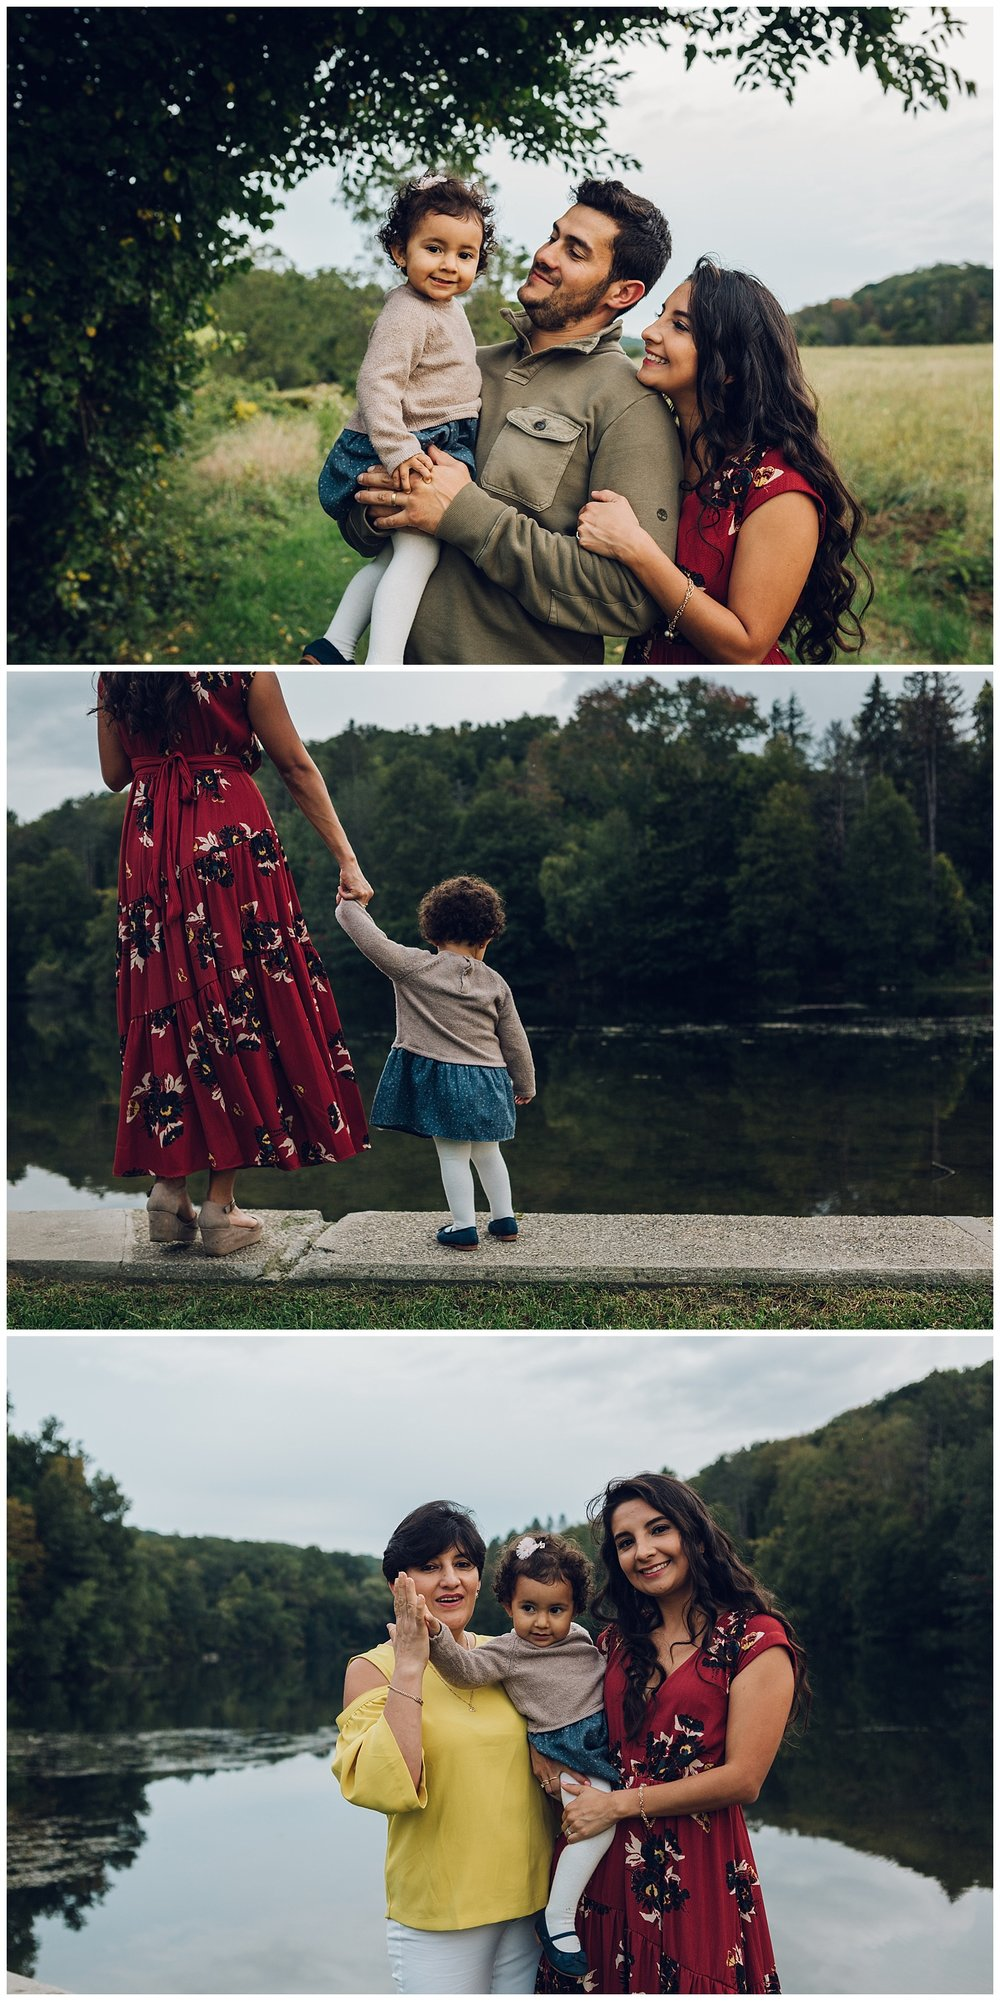 autumn family photography by laura barr photography